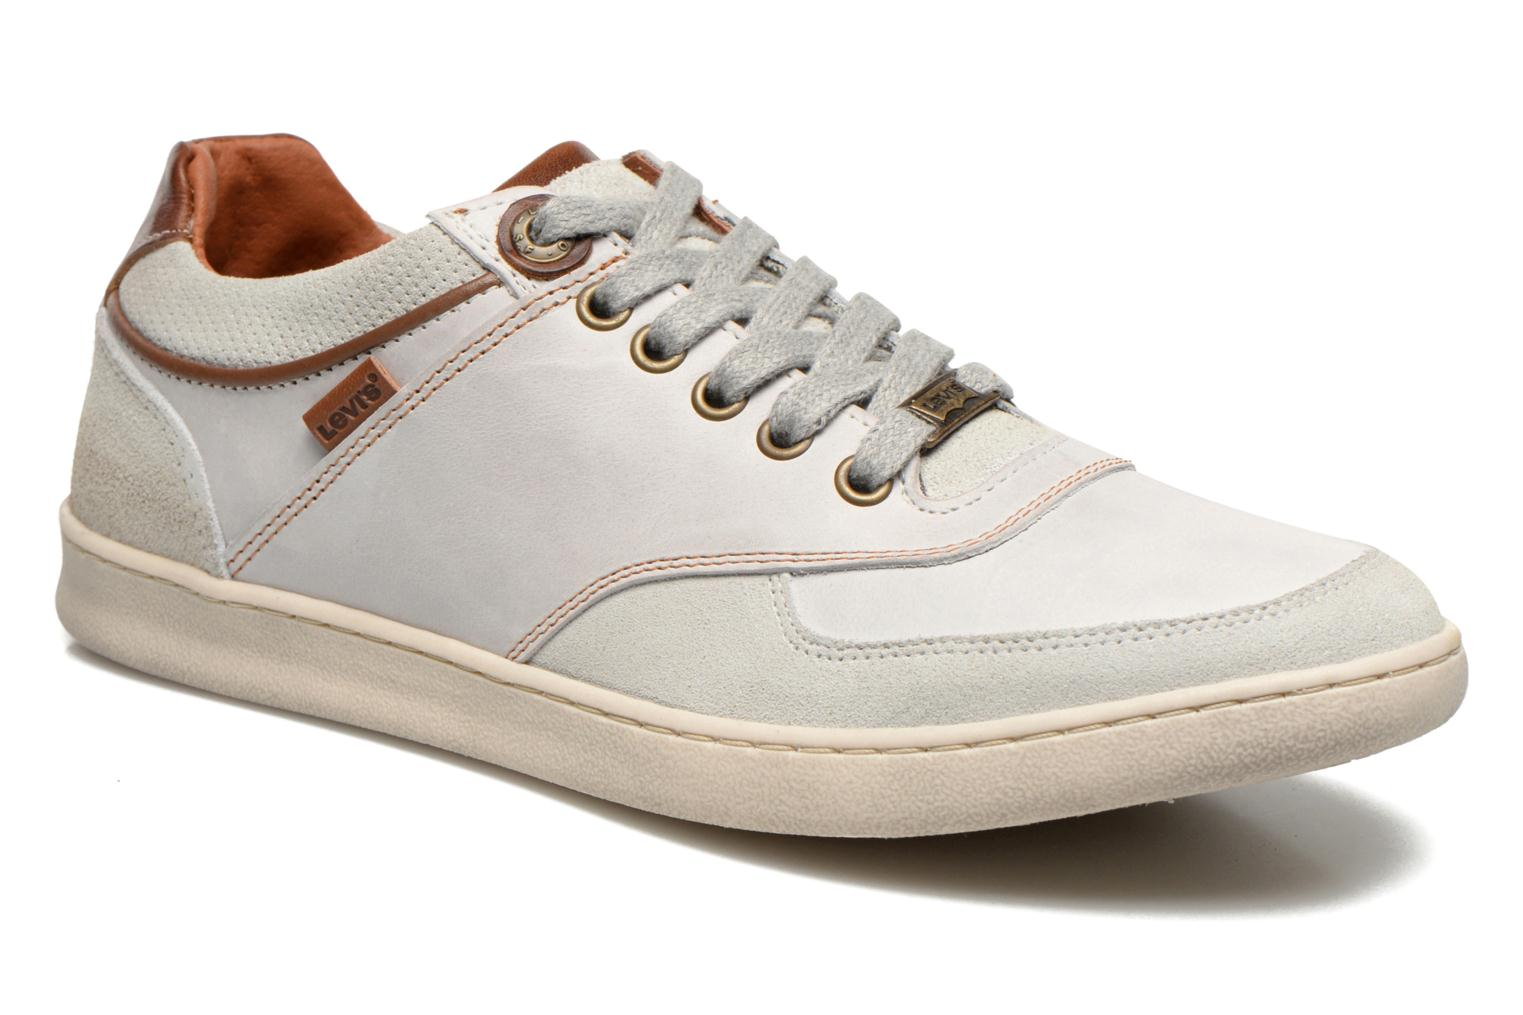 Sneakers Tulare PT Low Oxford by Levi's